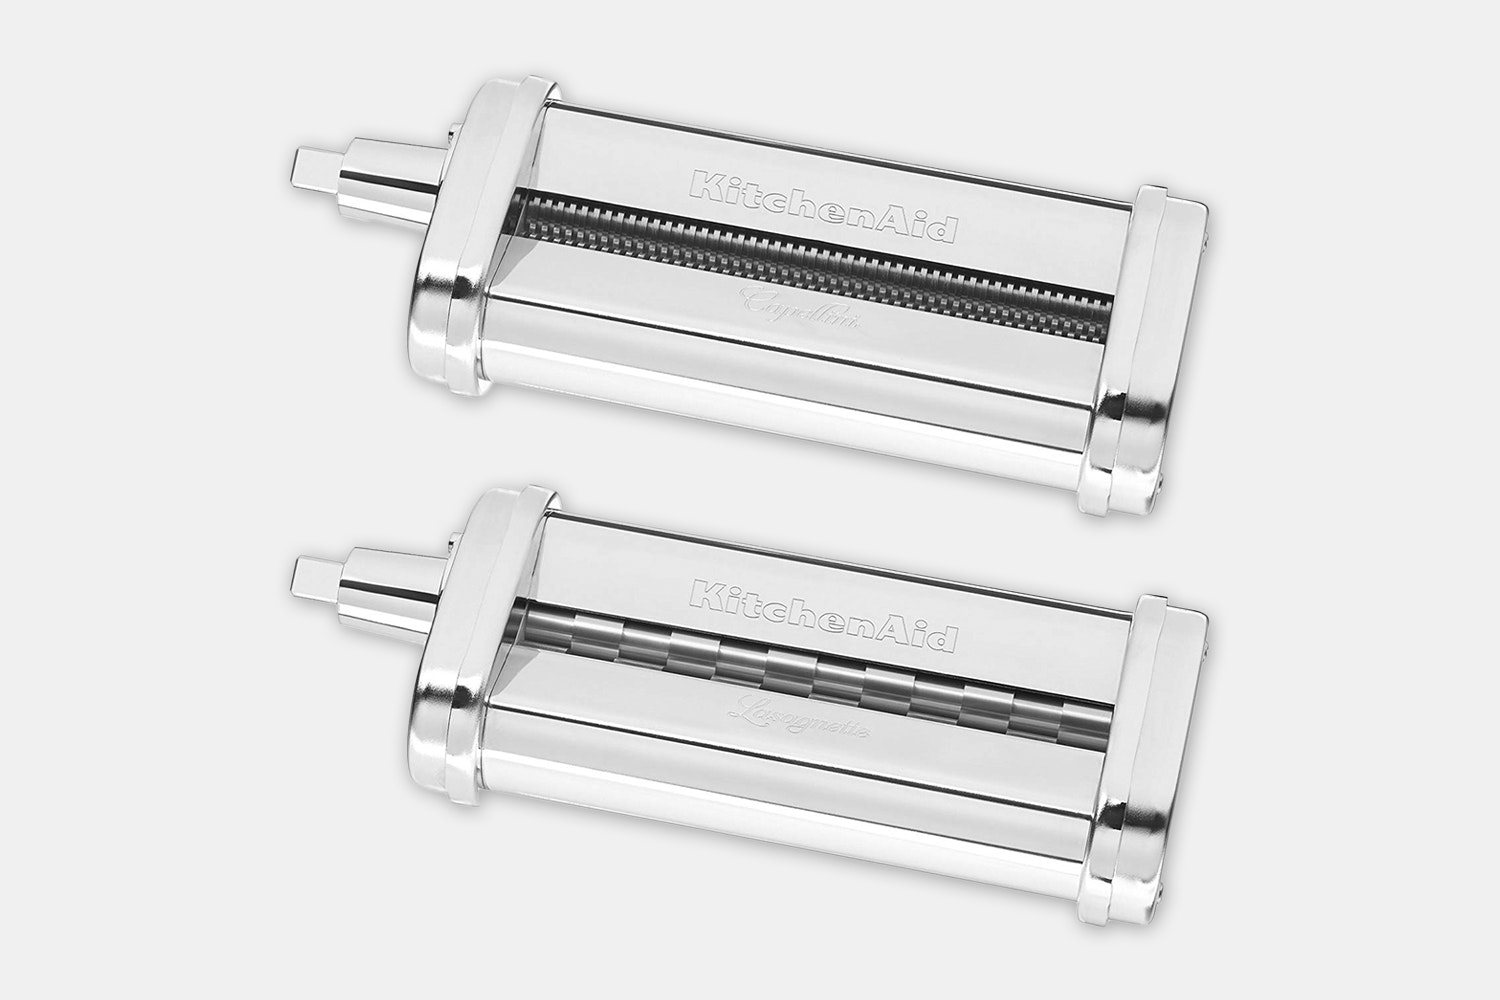 Pasta Cutter Attachments – Set of 2 (+$25)